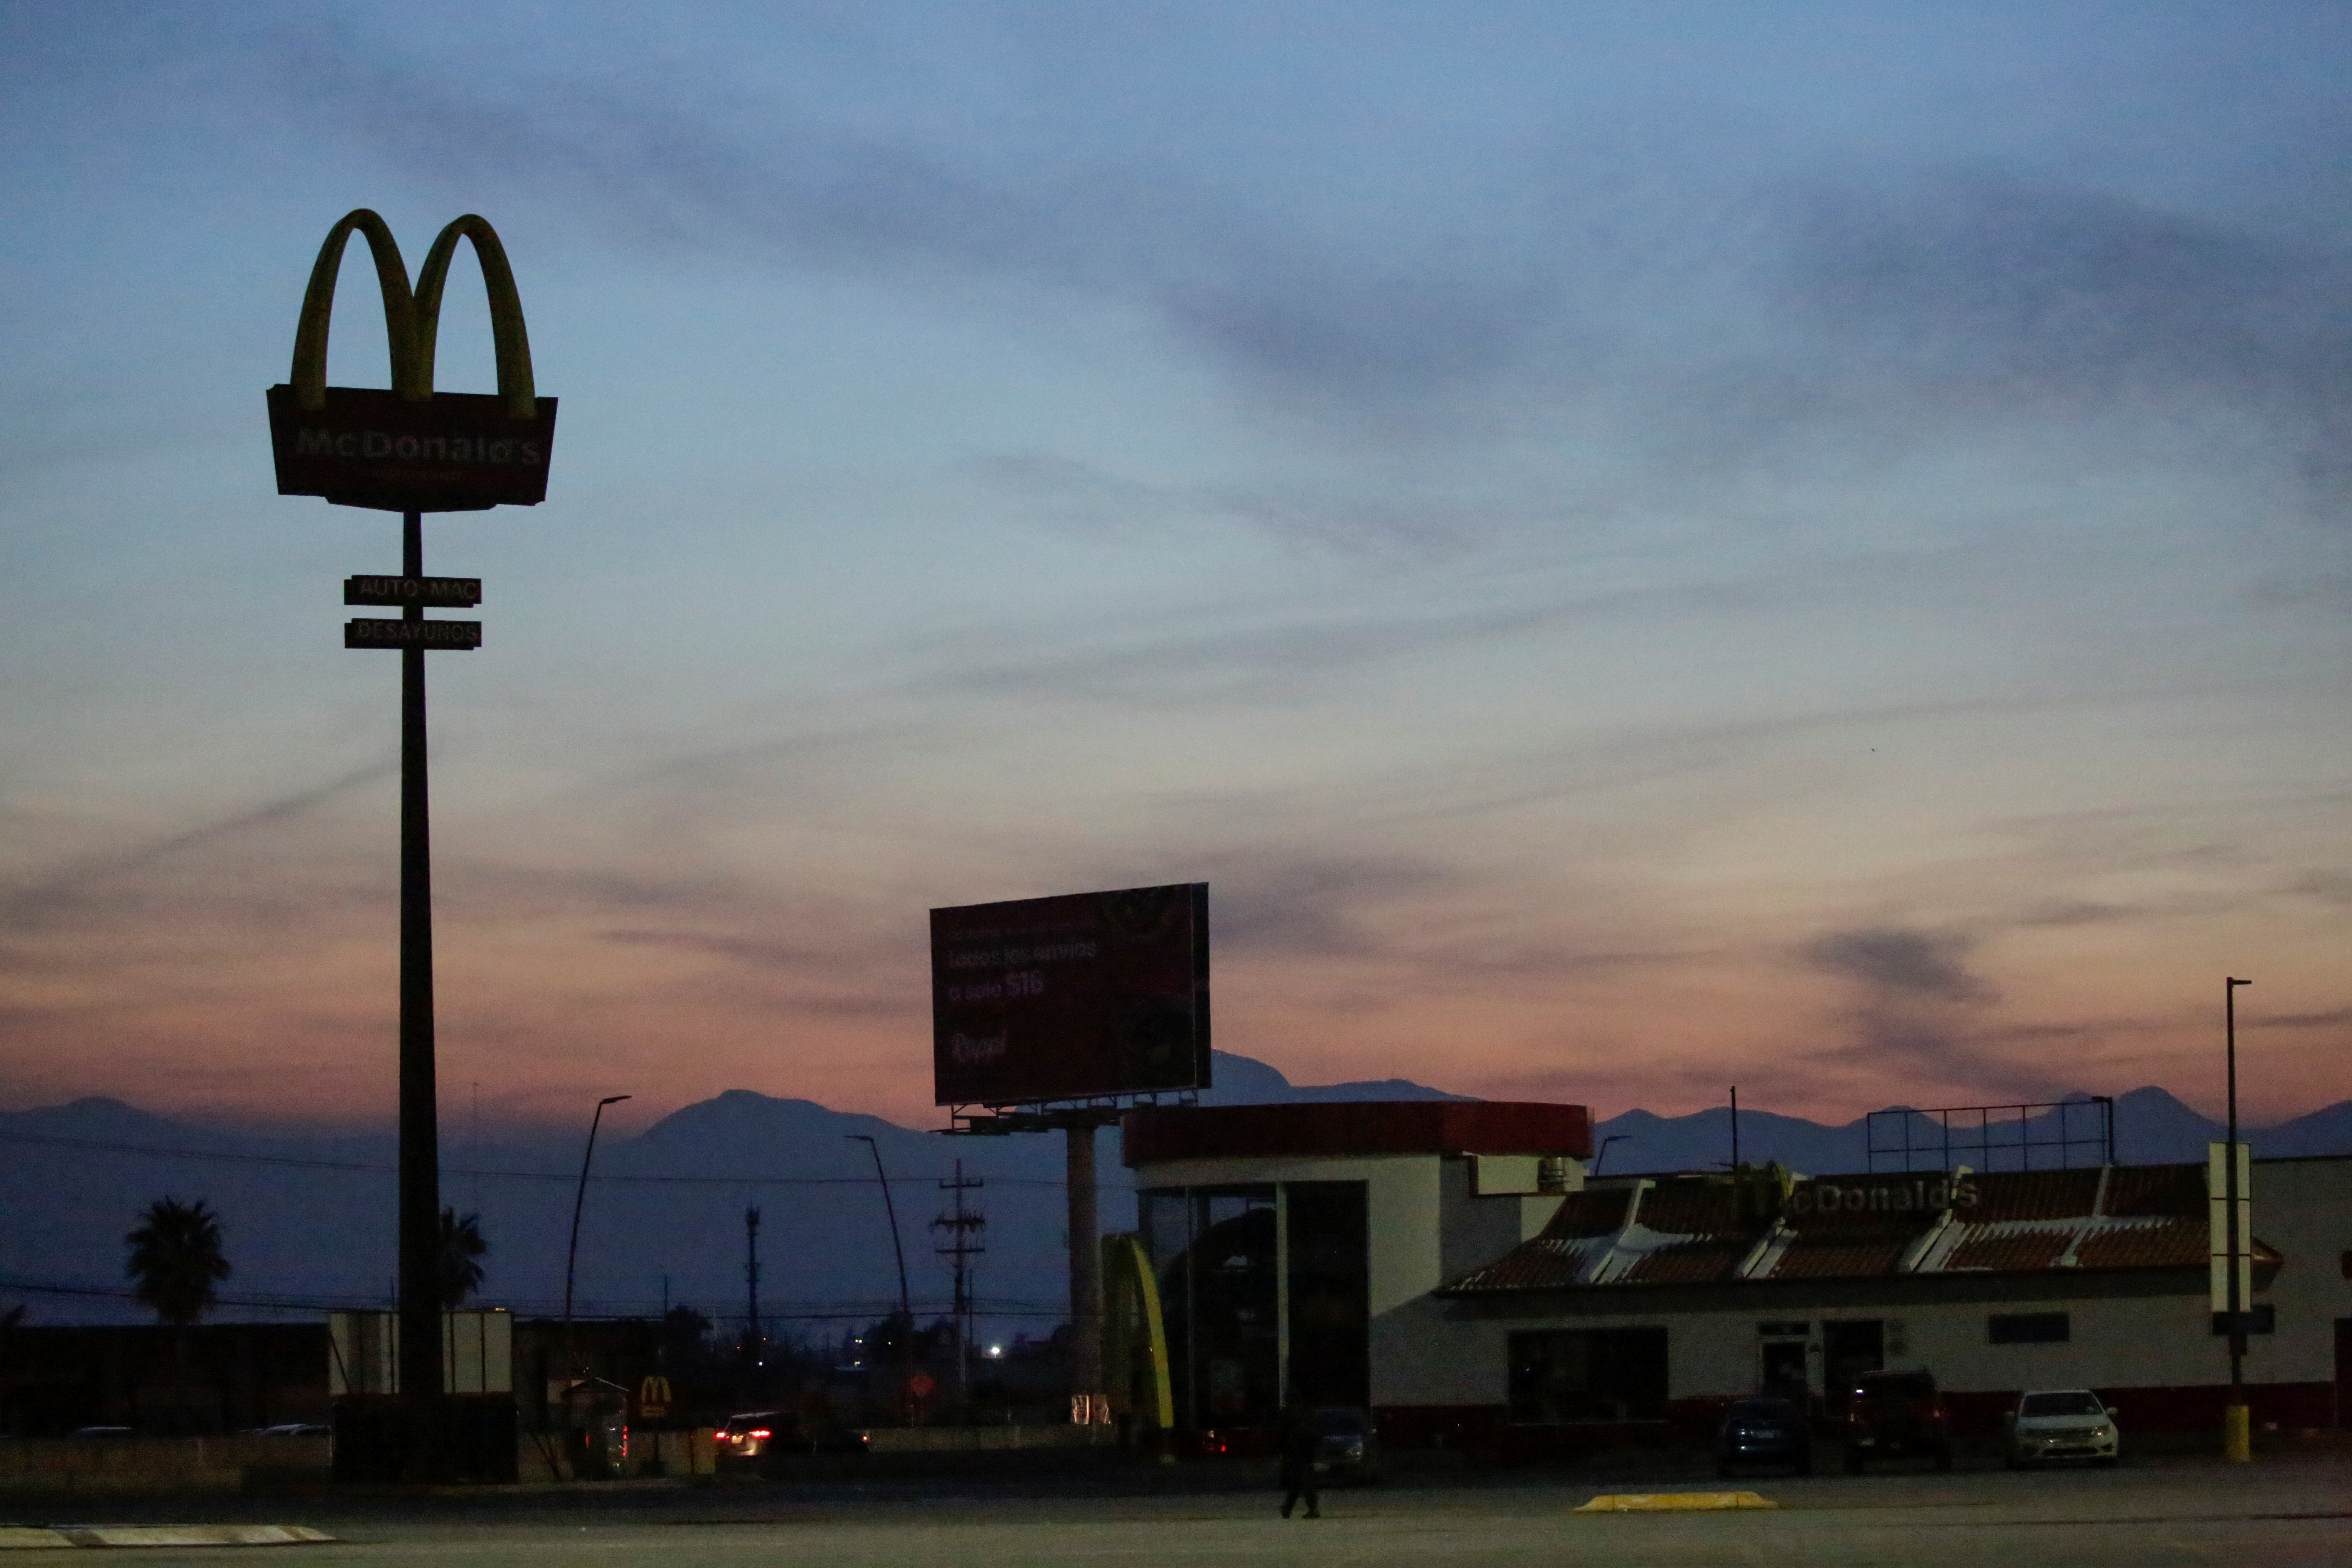 A McDonald's restaurant is seen without power during an outage in Mexico's electricity network, in Ciudad Juarez, Mexico February 15, 2021. REUTERS/Jose Luis Gonzalez